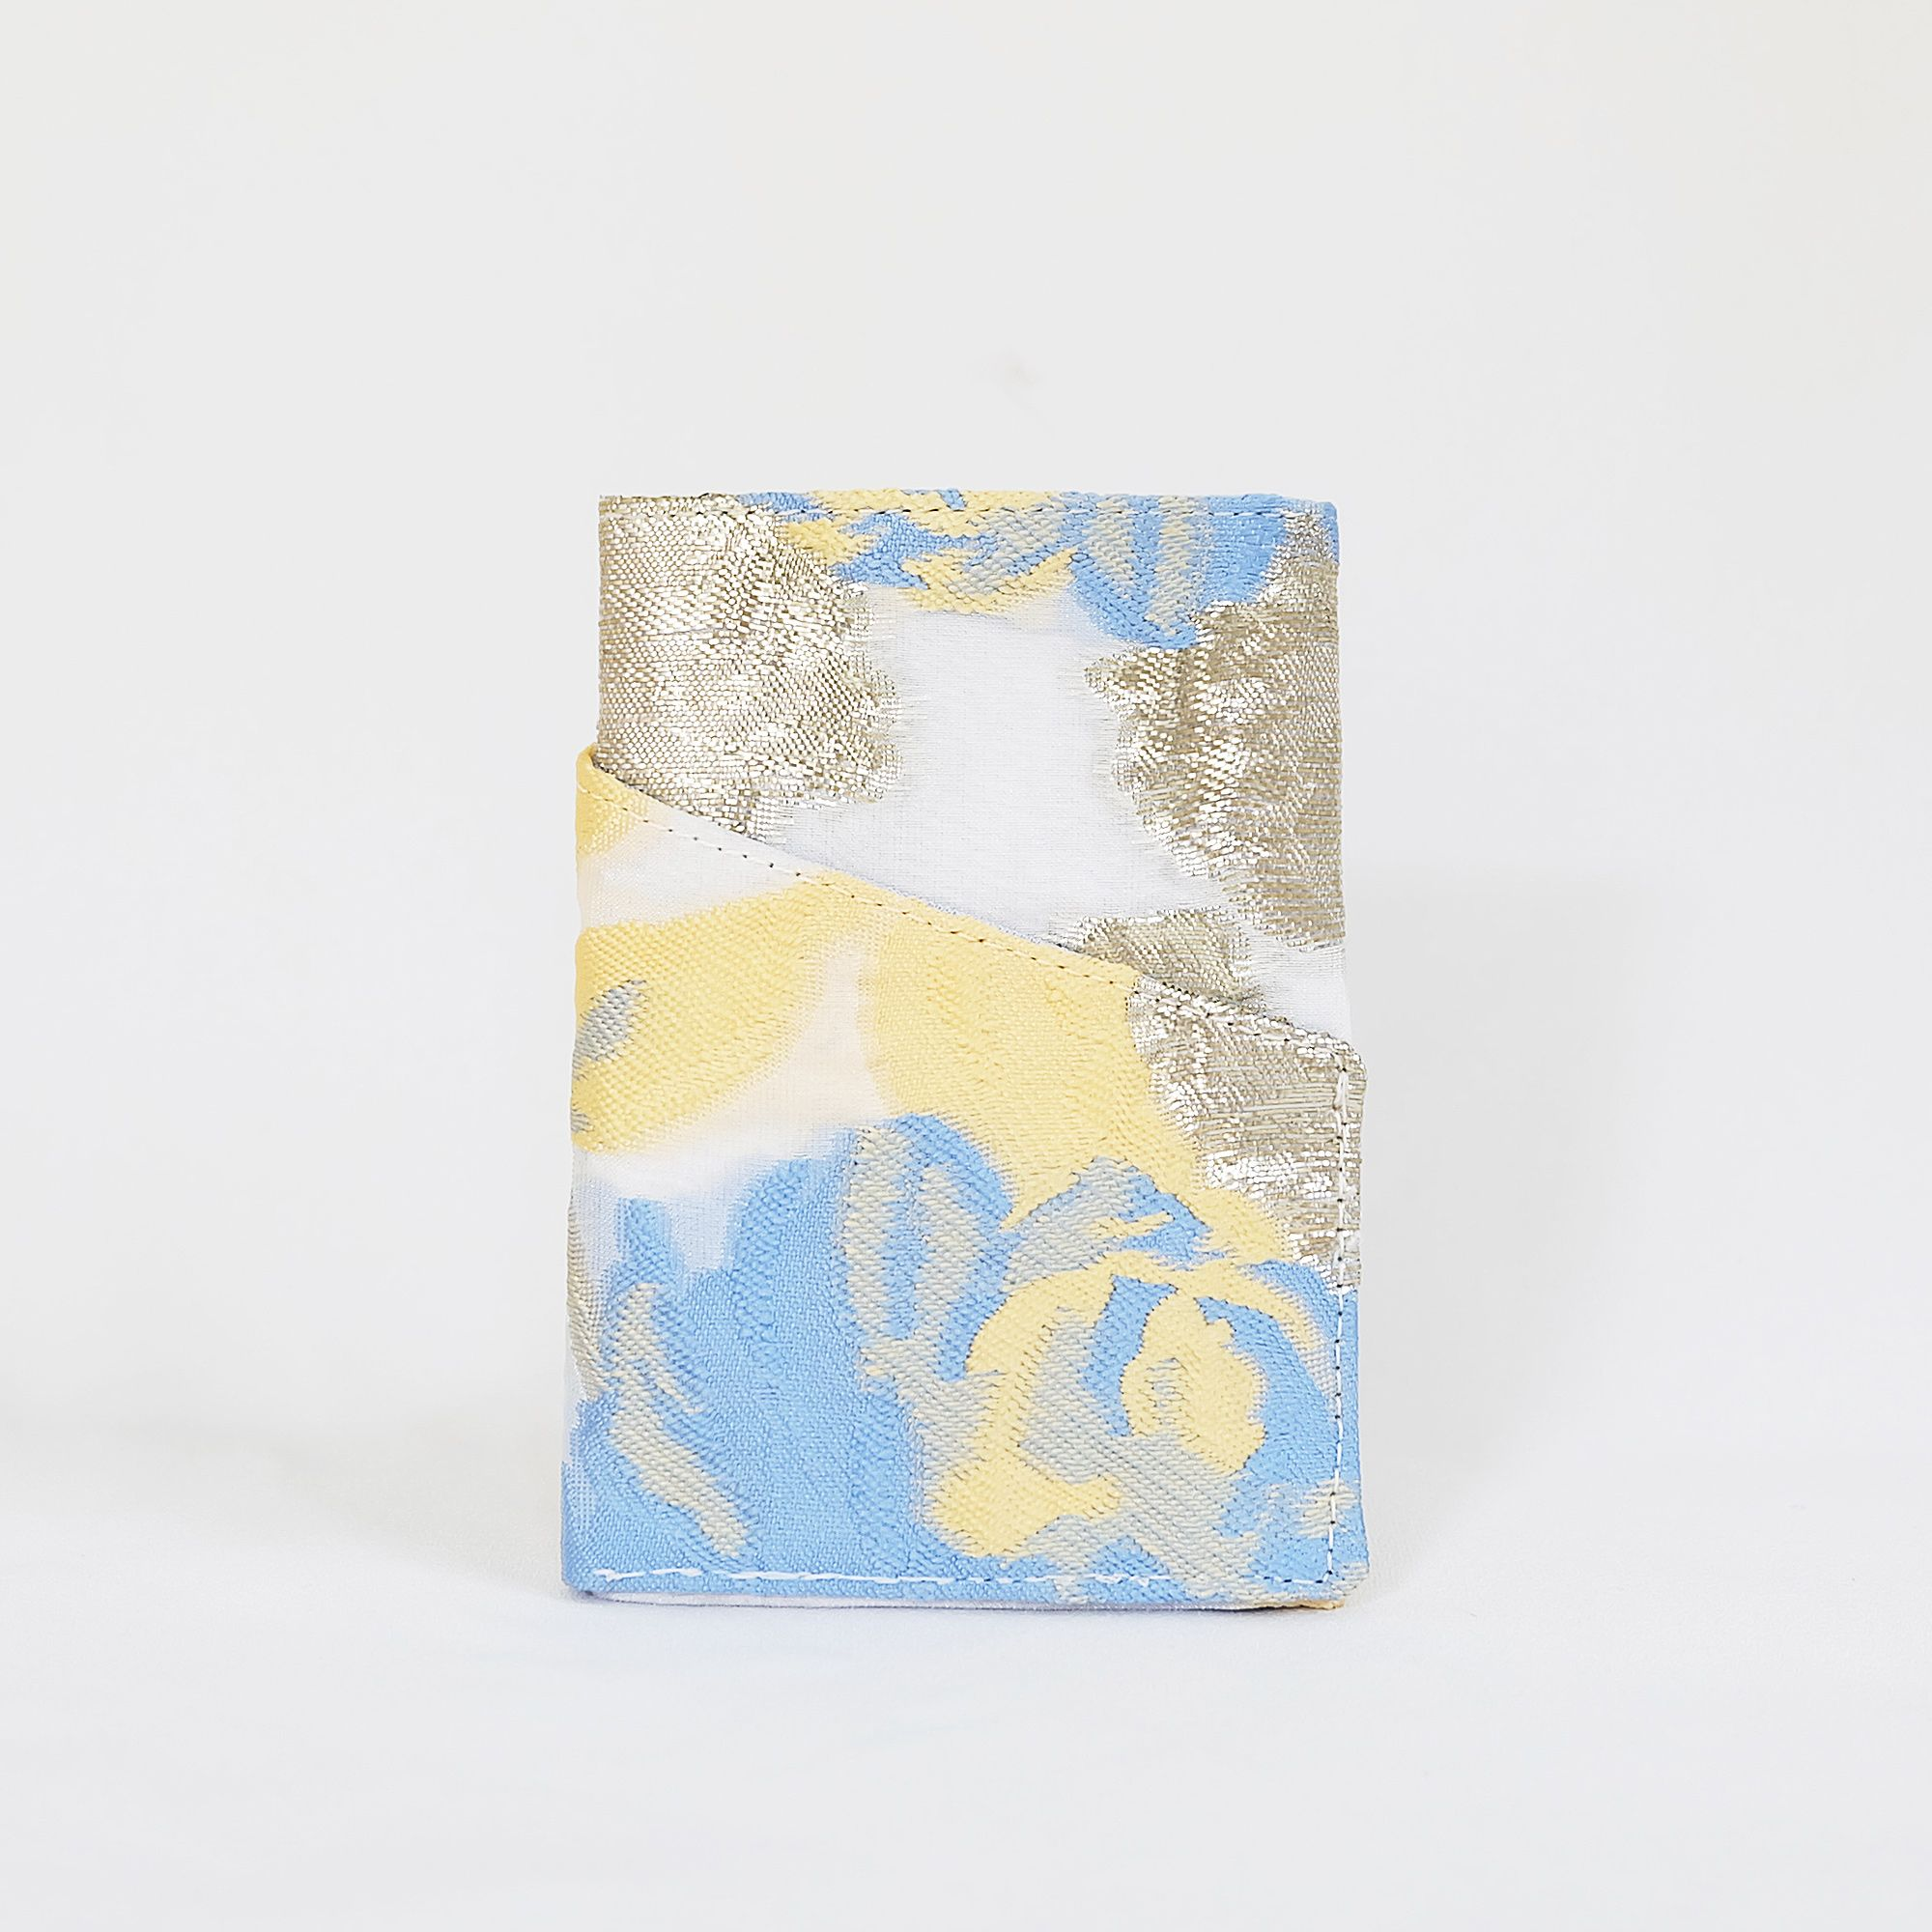 Hirsi Cardholder in Blue & Yellow